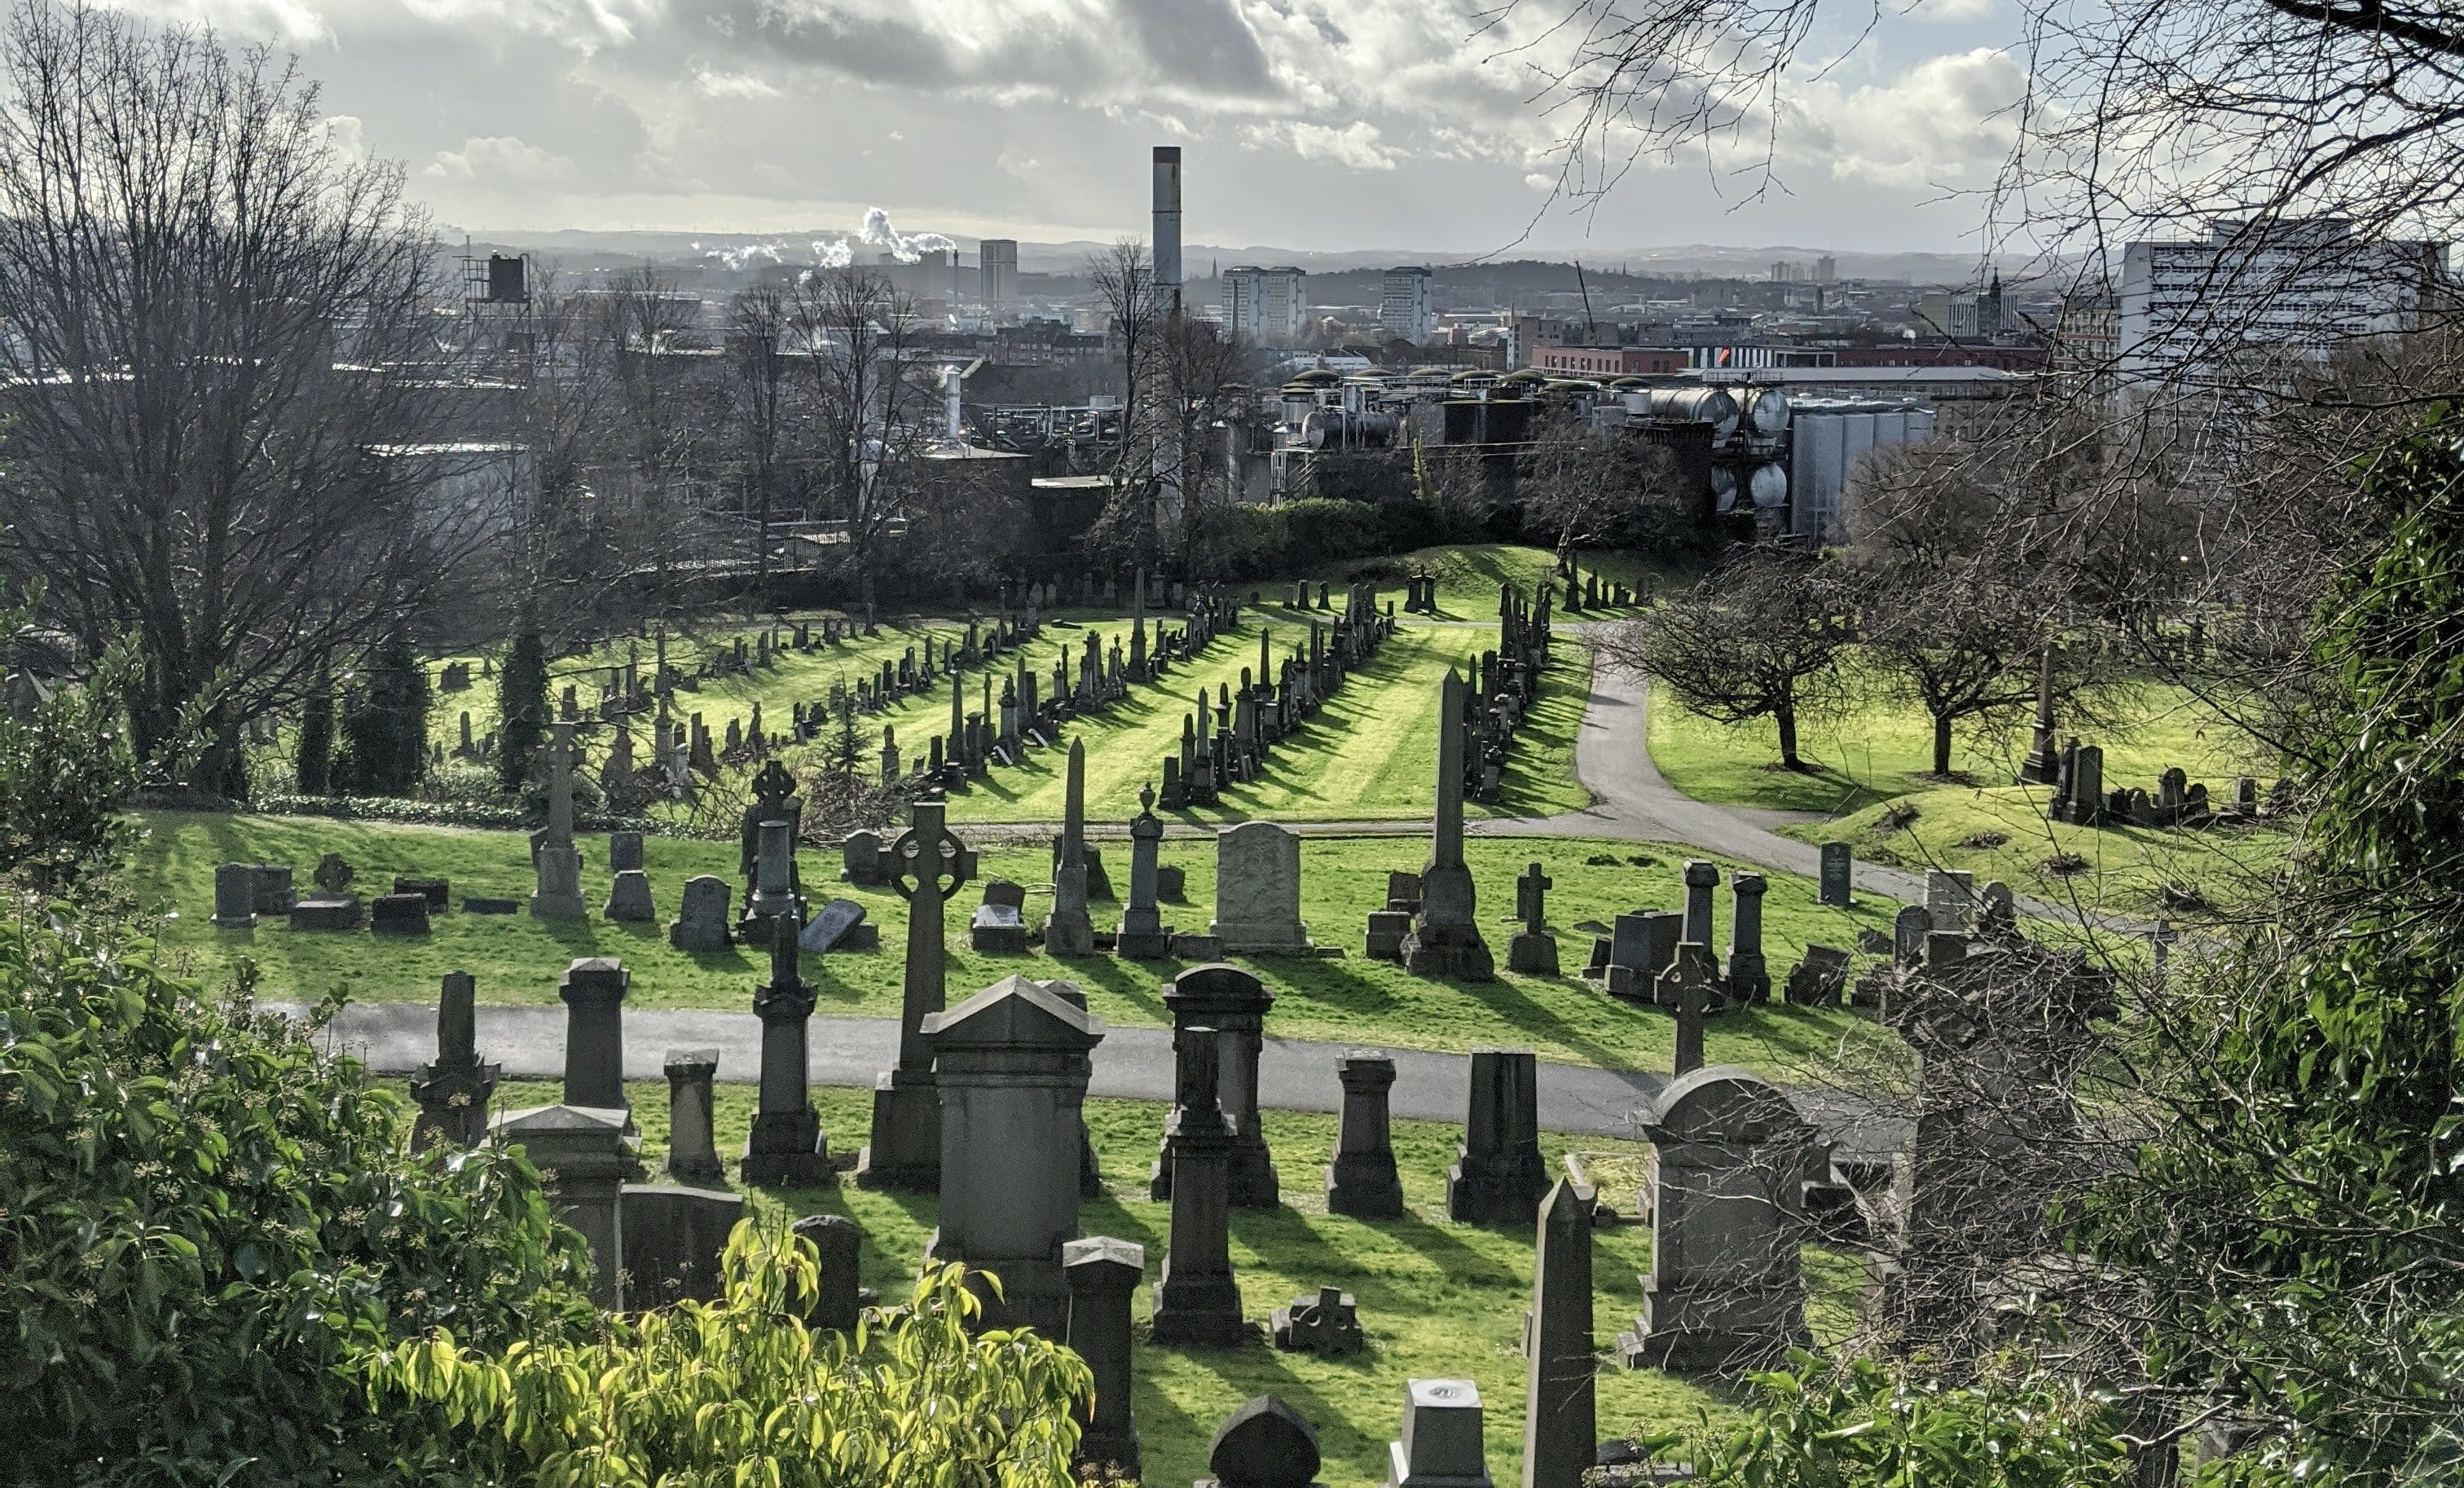 Landscape photo taken from a hill overlooking a large gravestone, with Glasgow city in the background under grey clouds.